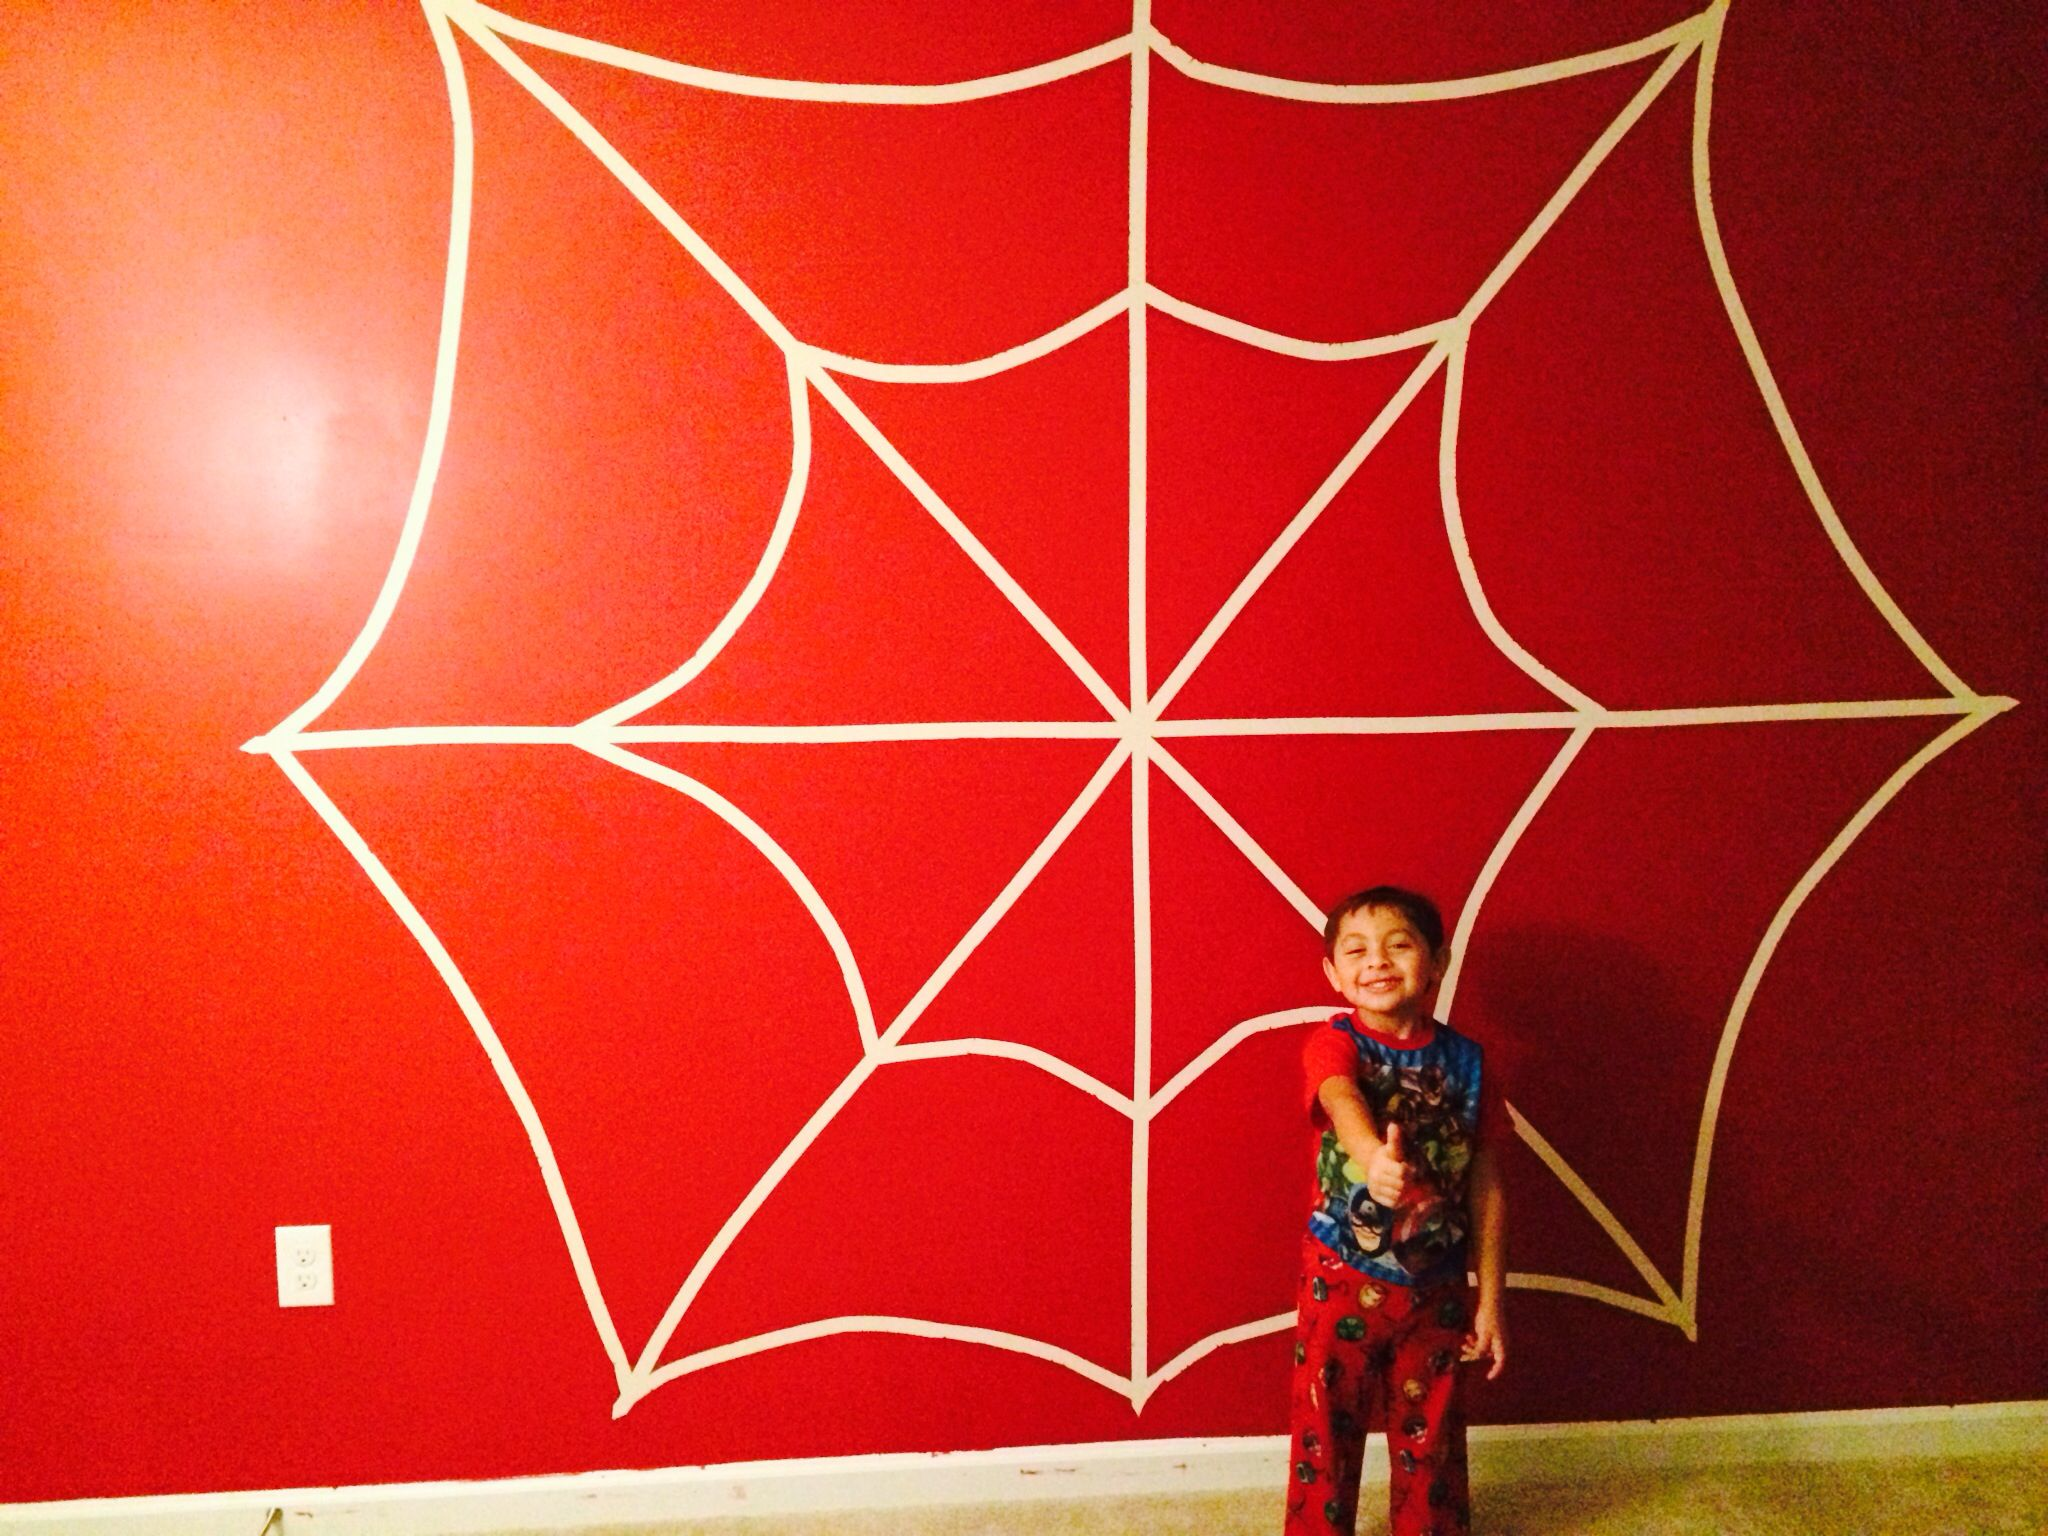 Spiderman Web Accent Wall For Superhero Themed Room Create Web With Painters Tape On White Wall Paint W Spiderman Room Spiderman Bedroom Spiderman Room Decor